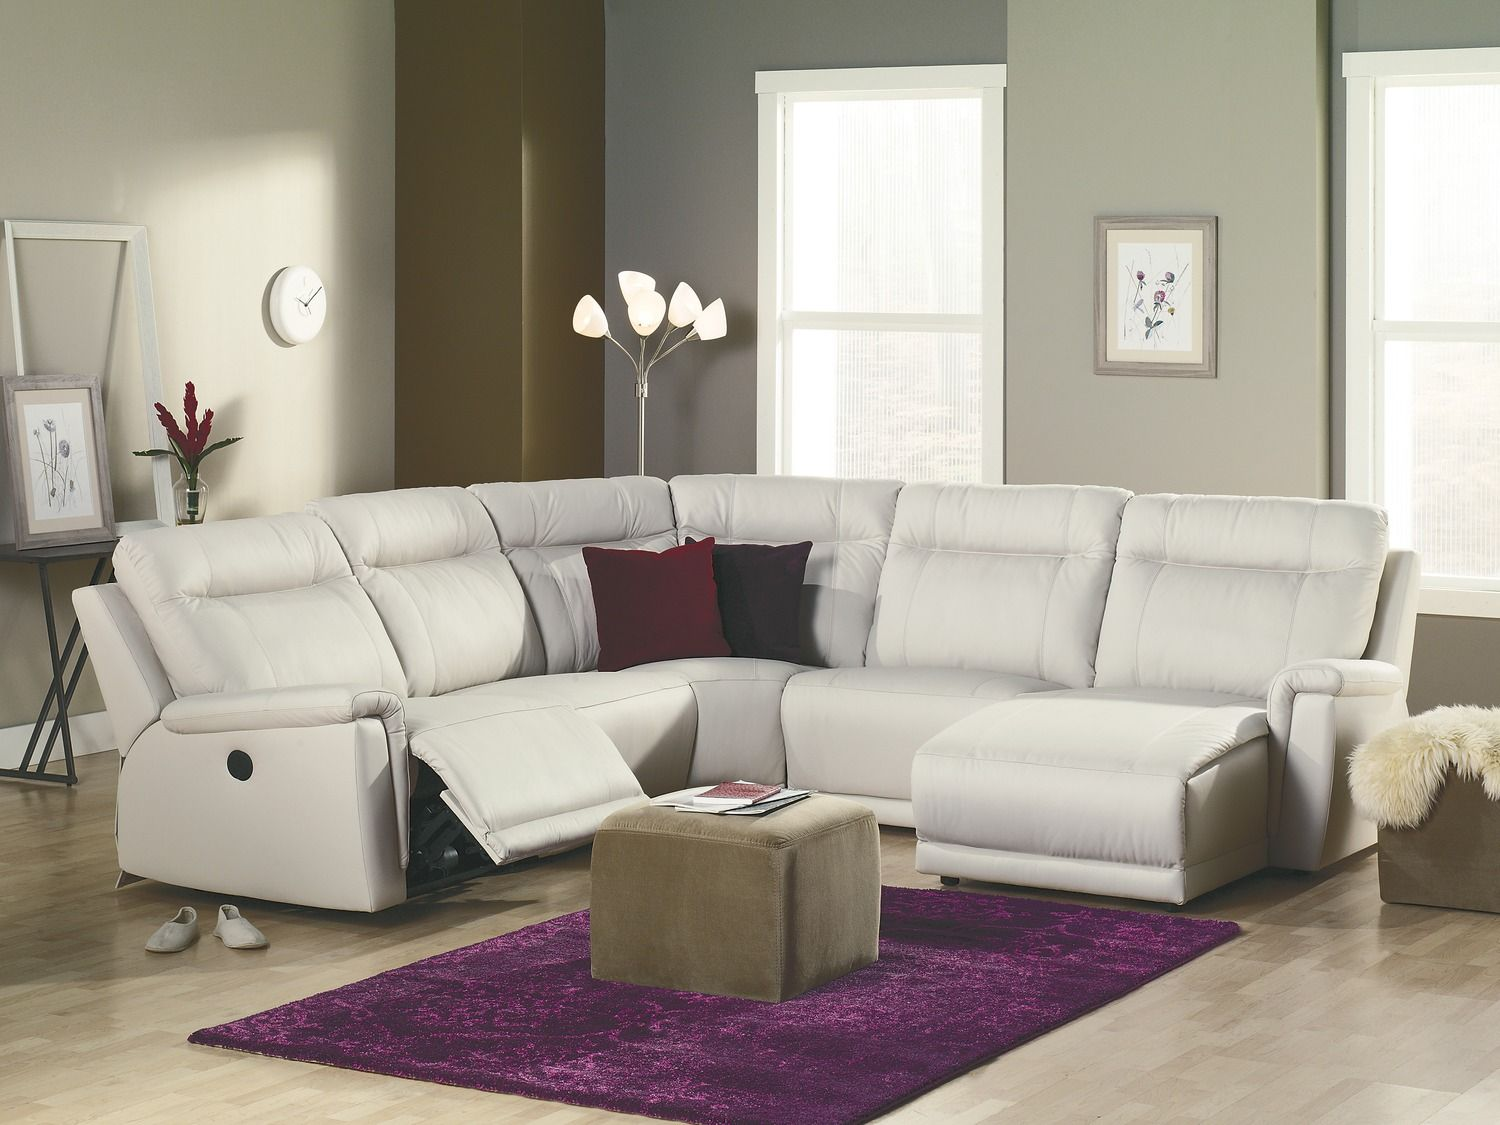 room palliser westpoint sectional set